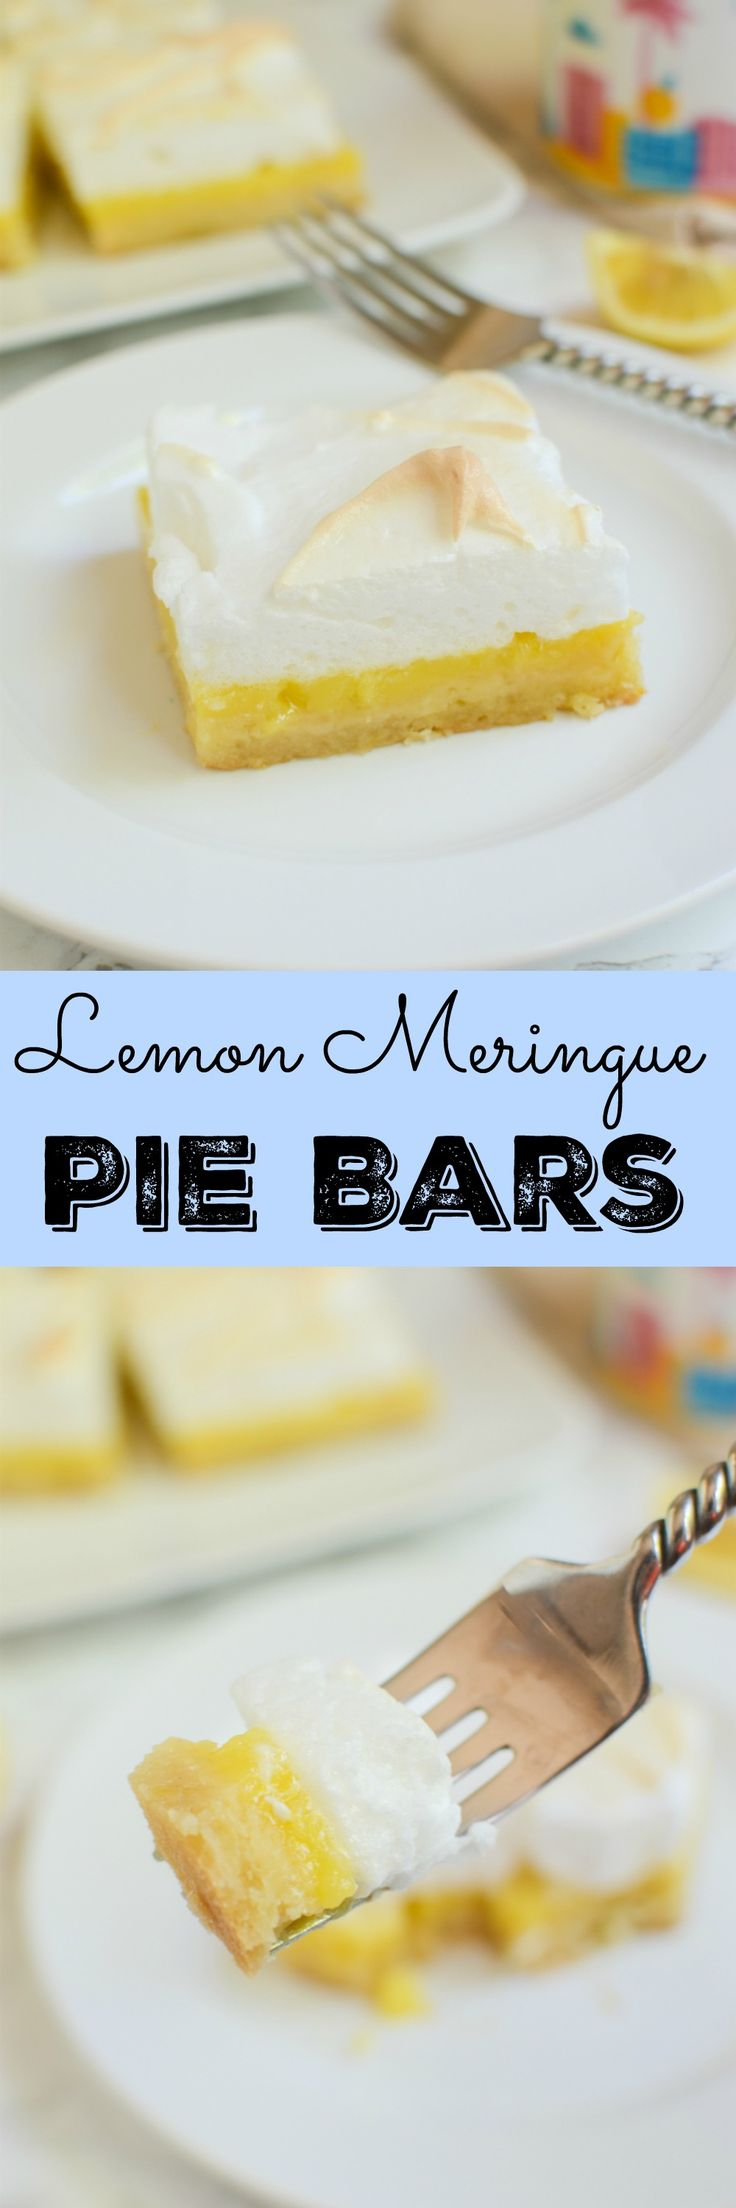 Lemon Meringue Pie Bars - buttery shortbread crust with tart lemon filling, topped with fluffy meringue!